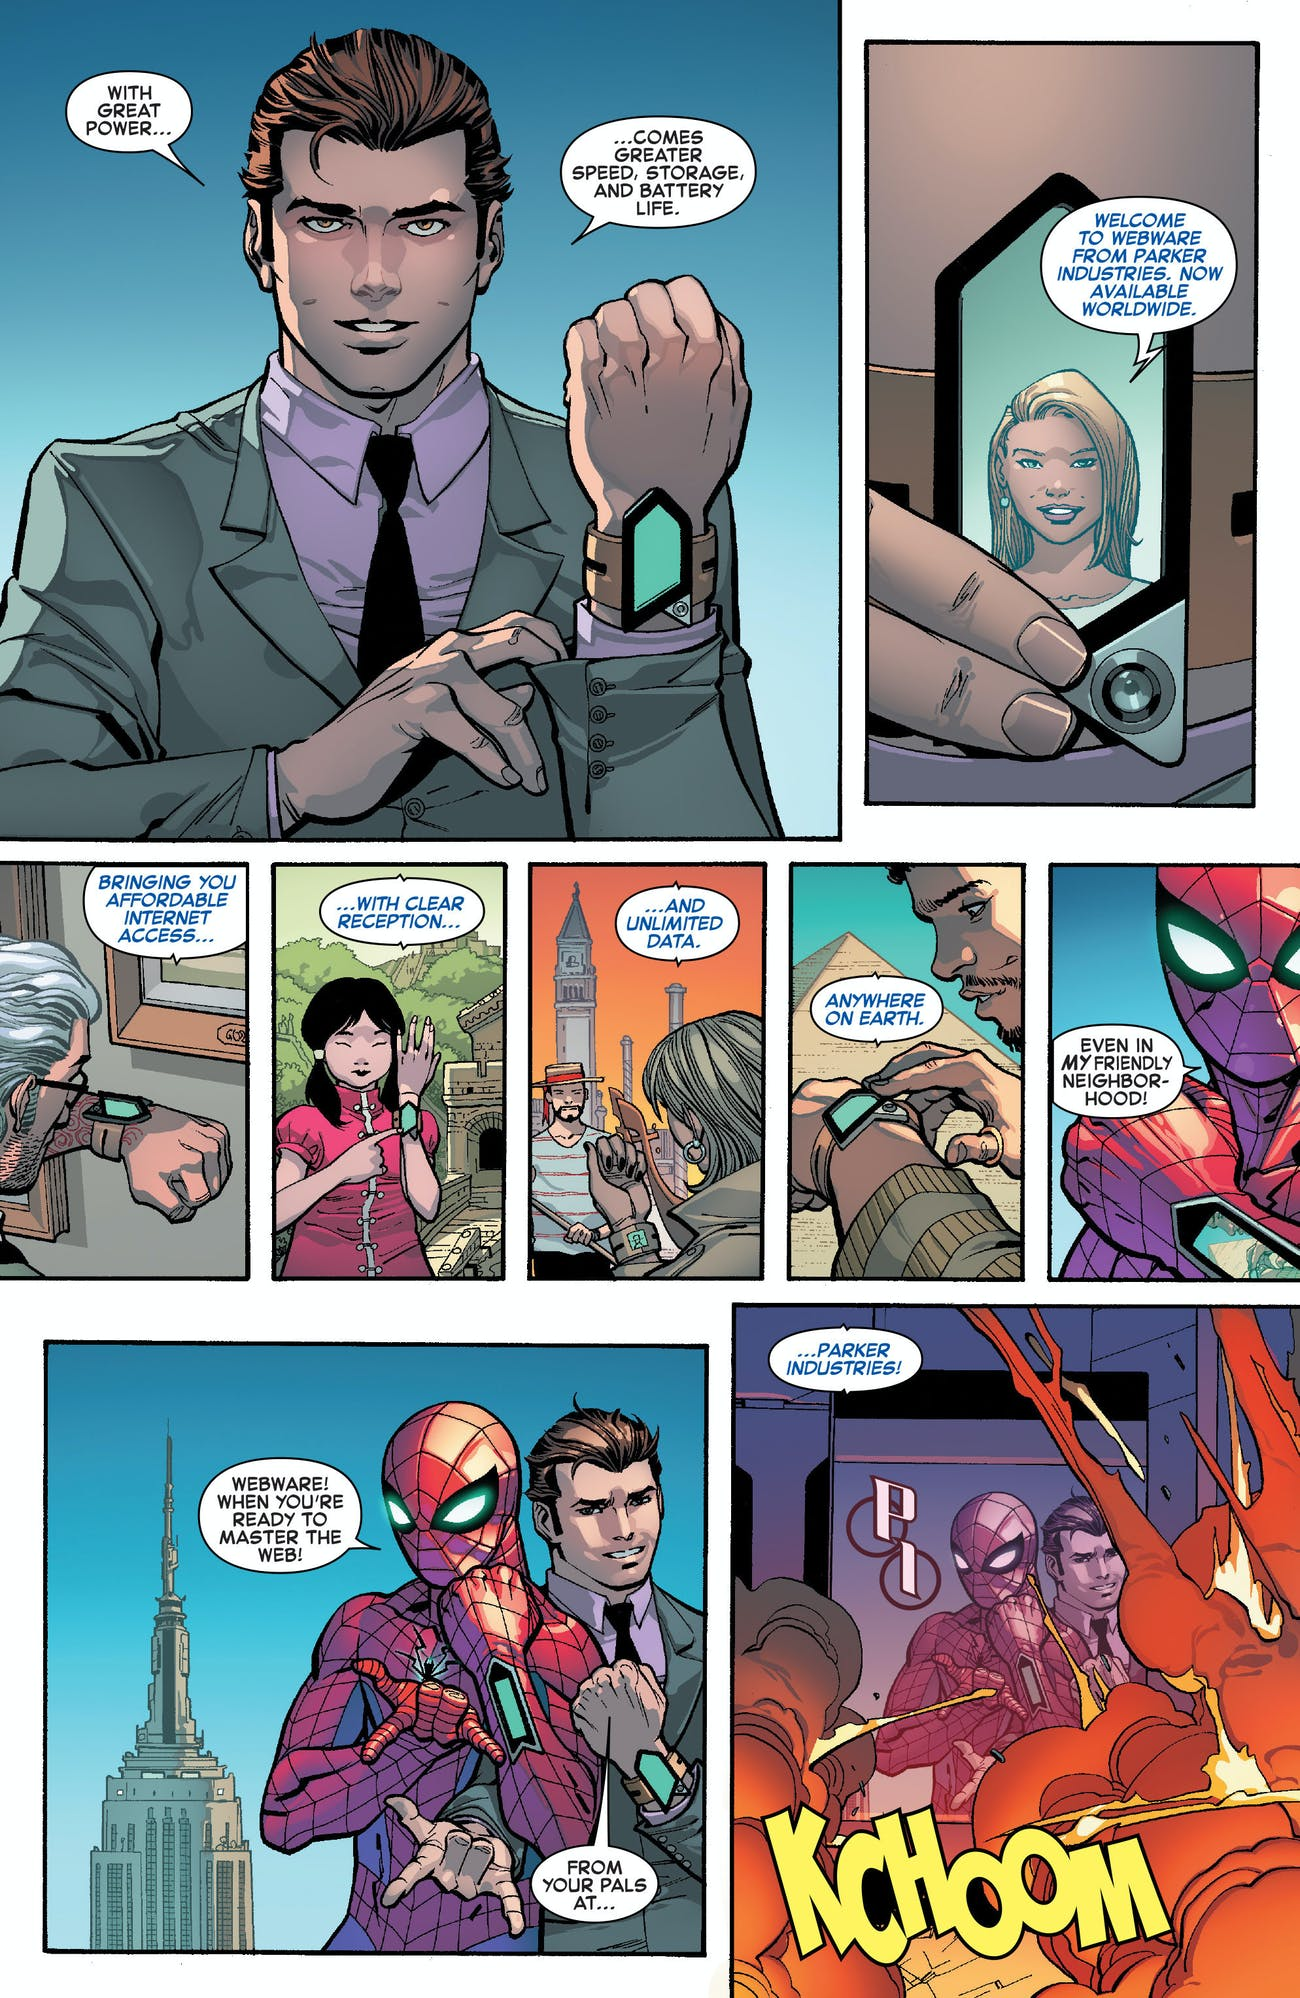 Peter Parker and Miles Morales: Two Spider-Men for Two Ages